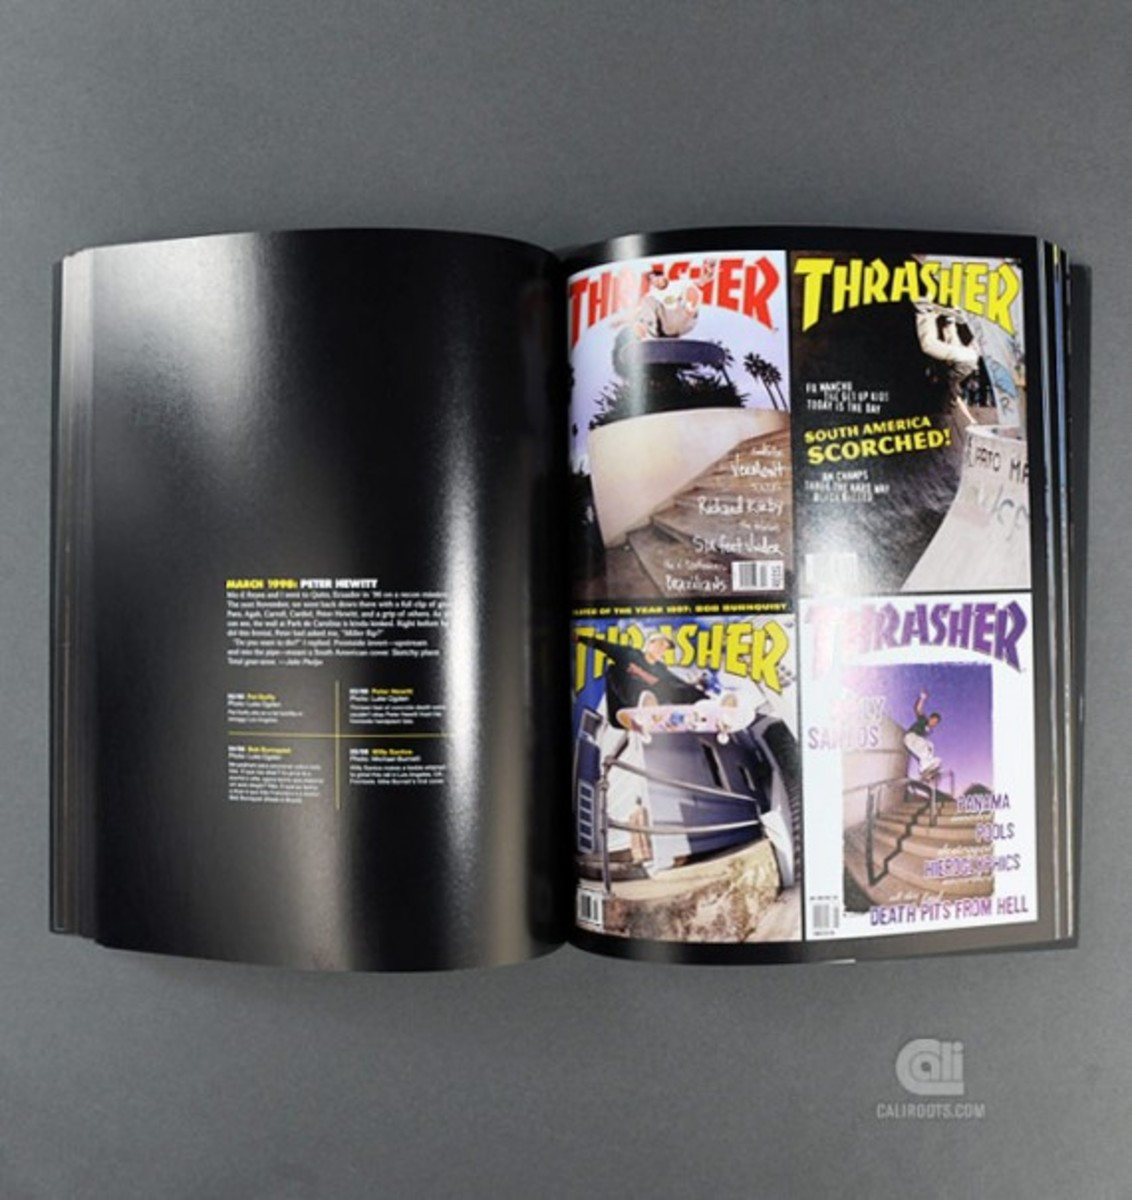 maximum-rad-the-iconic-covers-of-thrasher-magazine-book-by-rizzoli-06